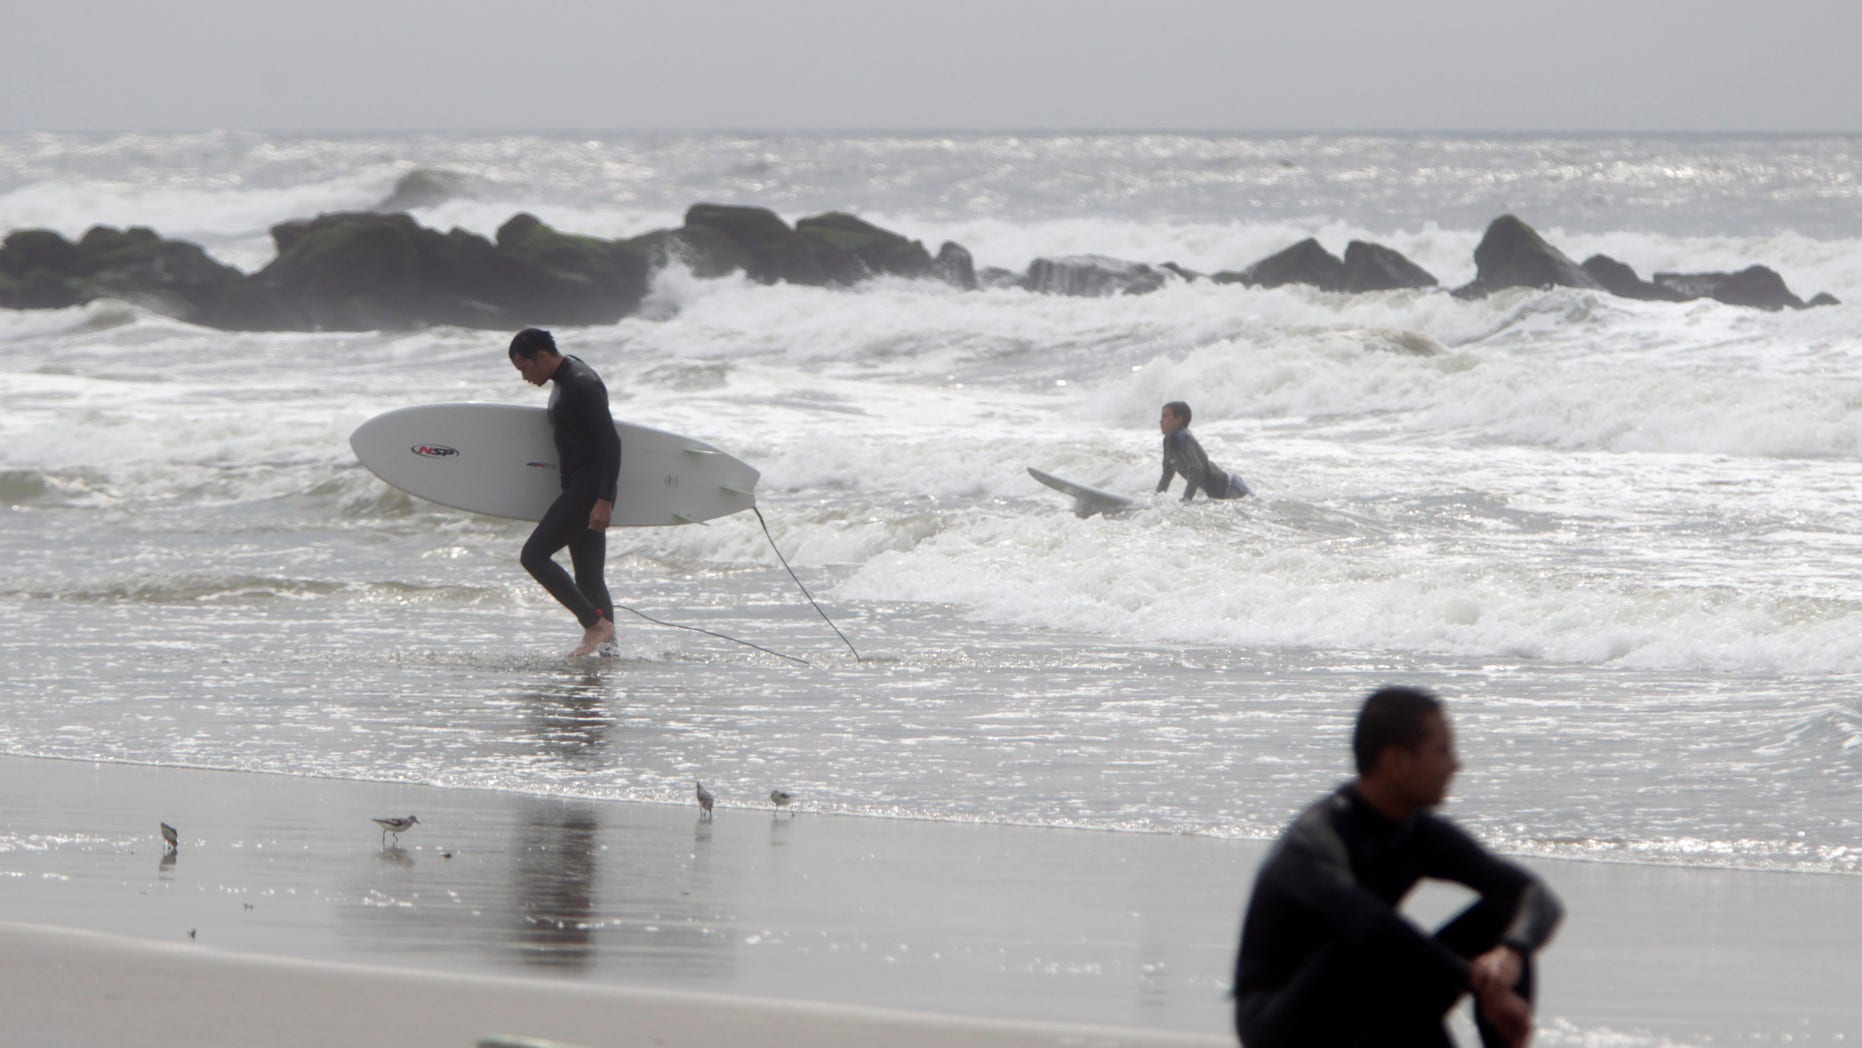 People surf in Long Beach, N.Y. The Long Island city, 50 minutes by train from Manhattan, is getting ready to play host to the Quiksilver Pro New York Surf Competition, starting Sept. 1 and running for two weeks.